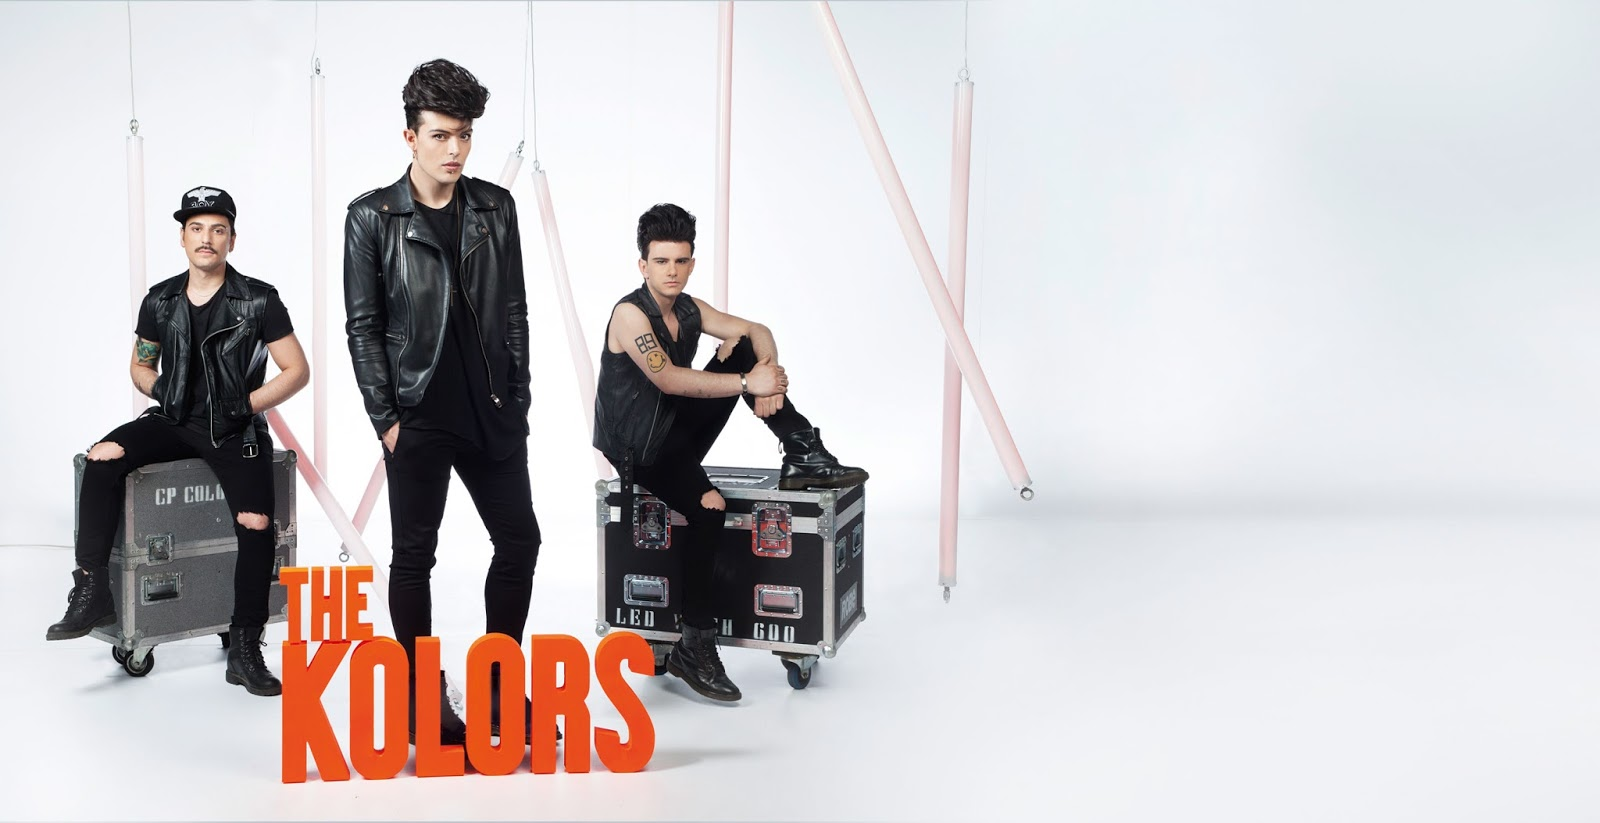 Realize - The Kolors: testo, video e traduzione